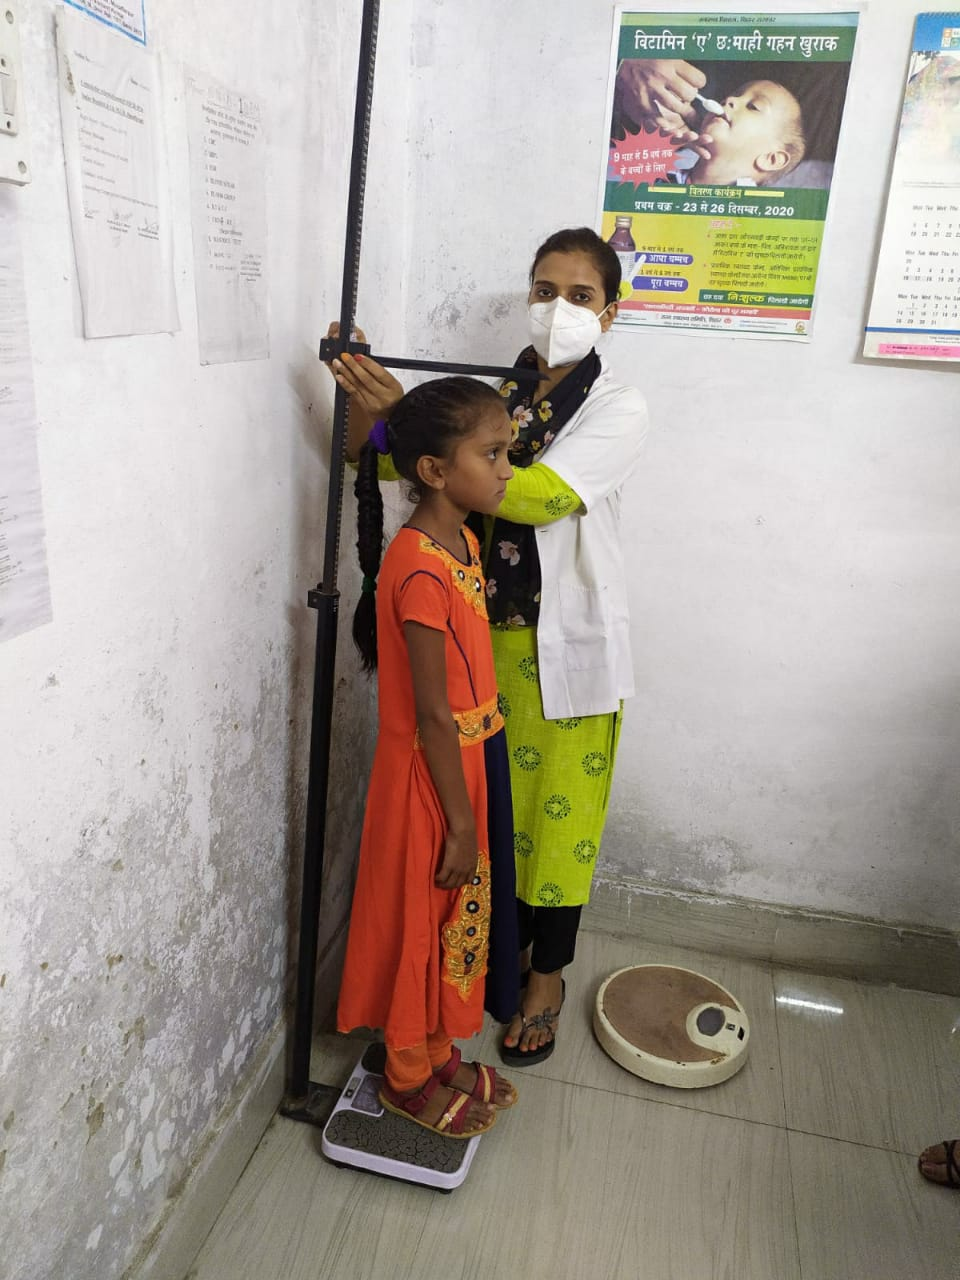 Measuring height and weight of children under poshan mahh 2021 to assess malnutrition on 08/09/2021